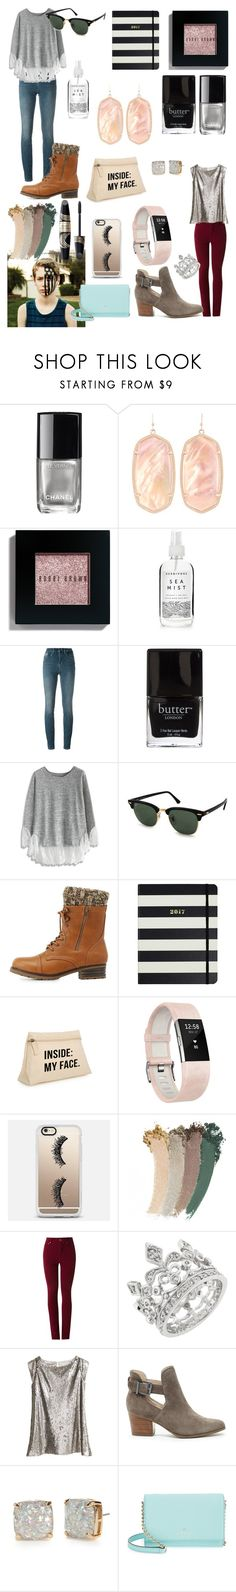 """""""Lila Blue"""" by ehodgson2001 ❤ liked on Polyvore featuring Chanel, Kendra Scott, Bobbi Brown Cosmetics, Herbivore, Calvin Klein Jeans, Butter London, Chicwish, Ray-Ban, Charlotte Russe and Kate Spade"""